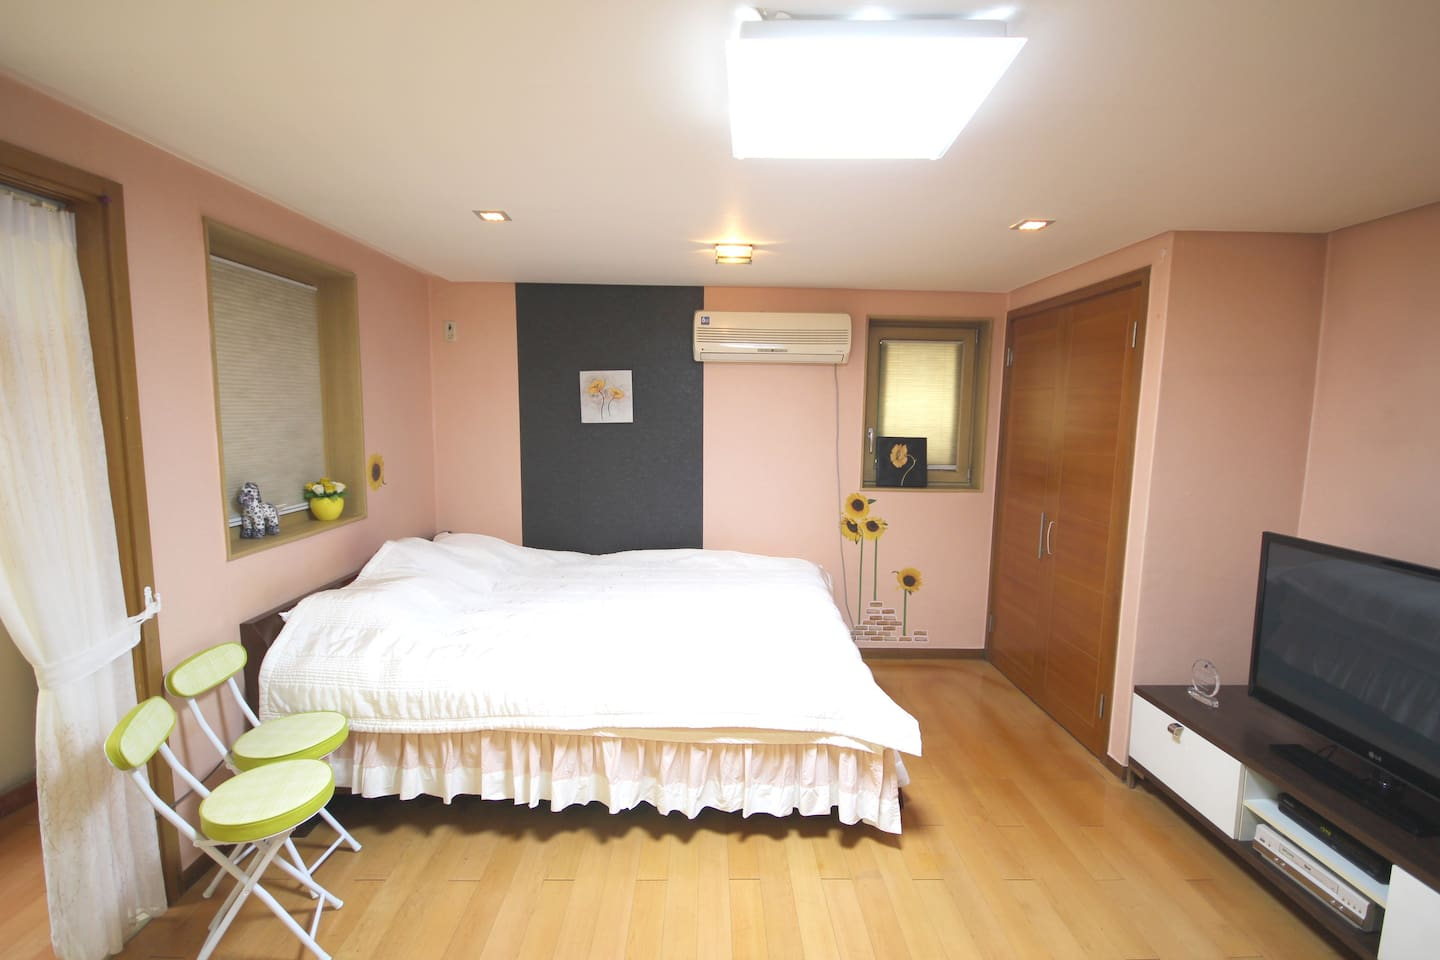 Cozy and spacious entire studio! The studio size is 33 square meters. (11평 in Korean) It's more spacious than pictures:)